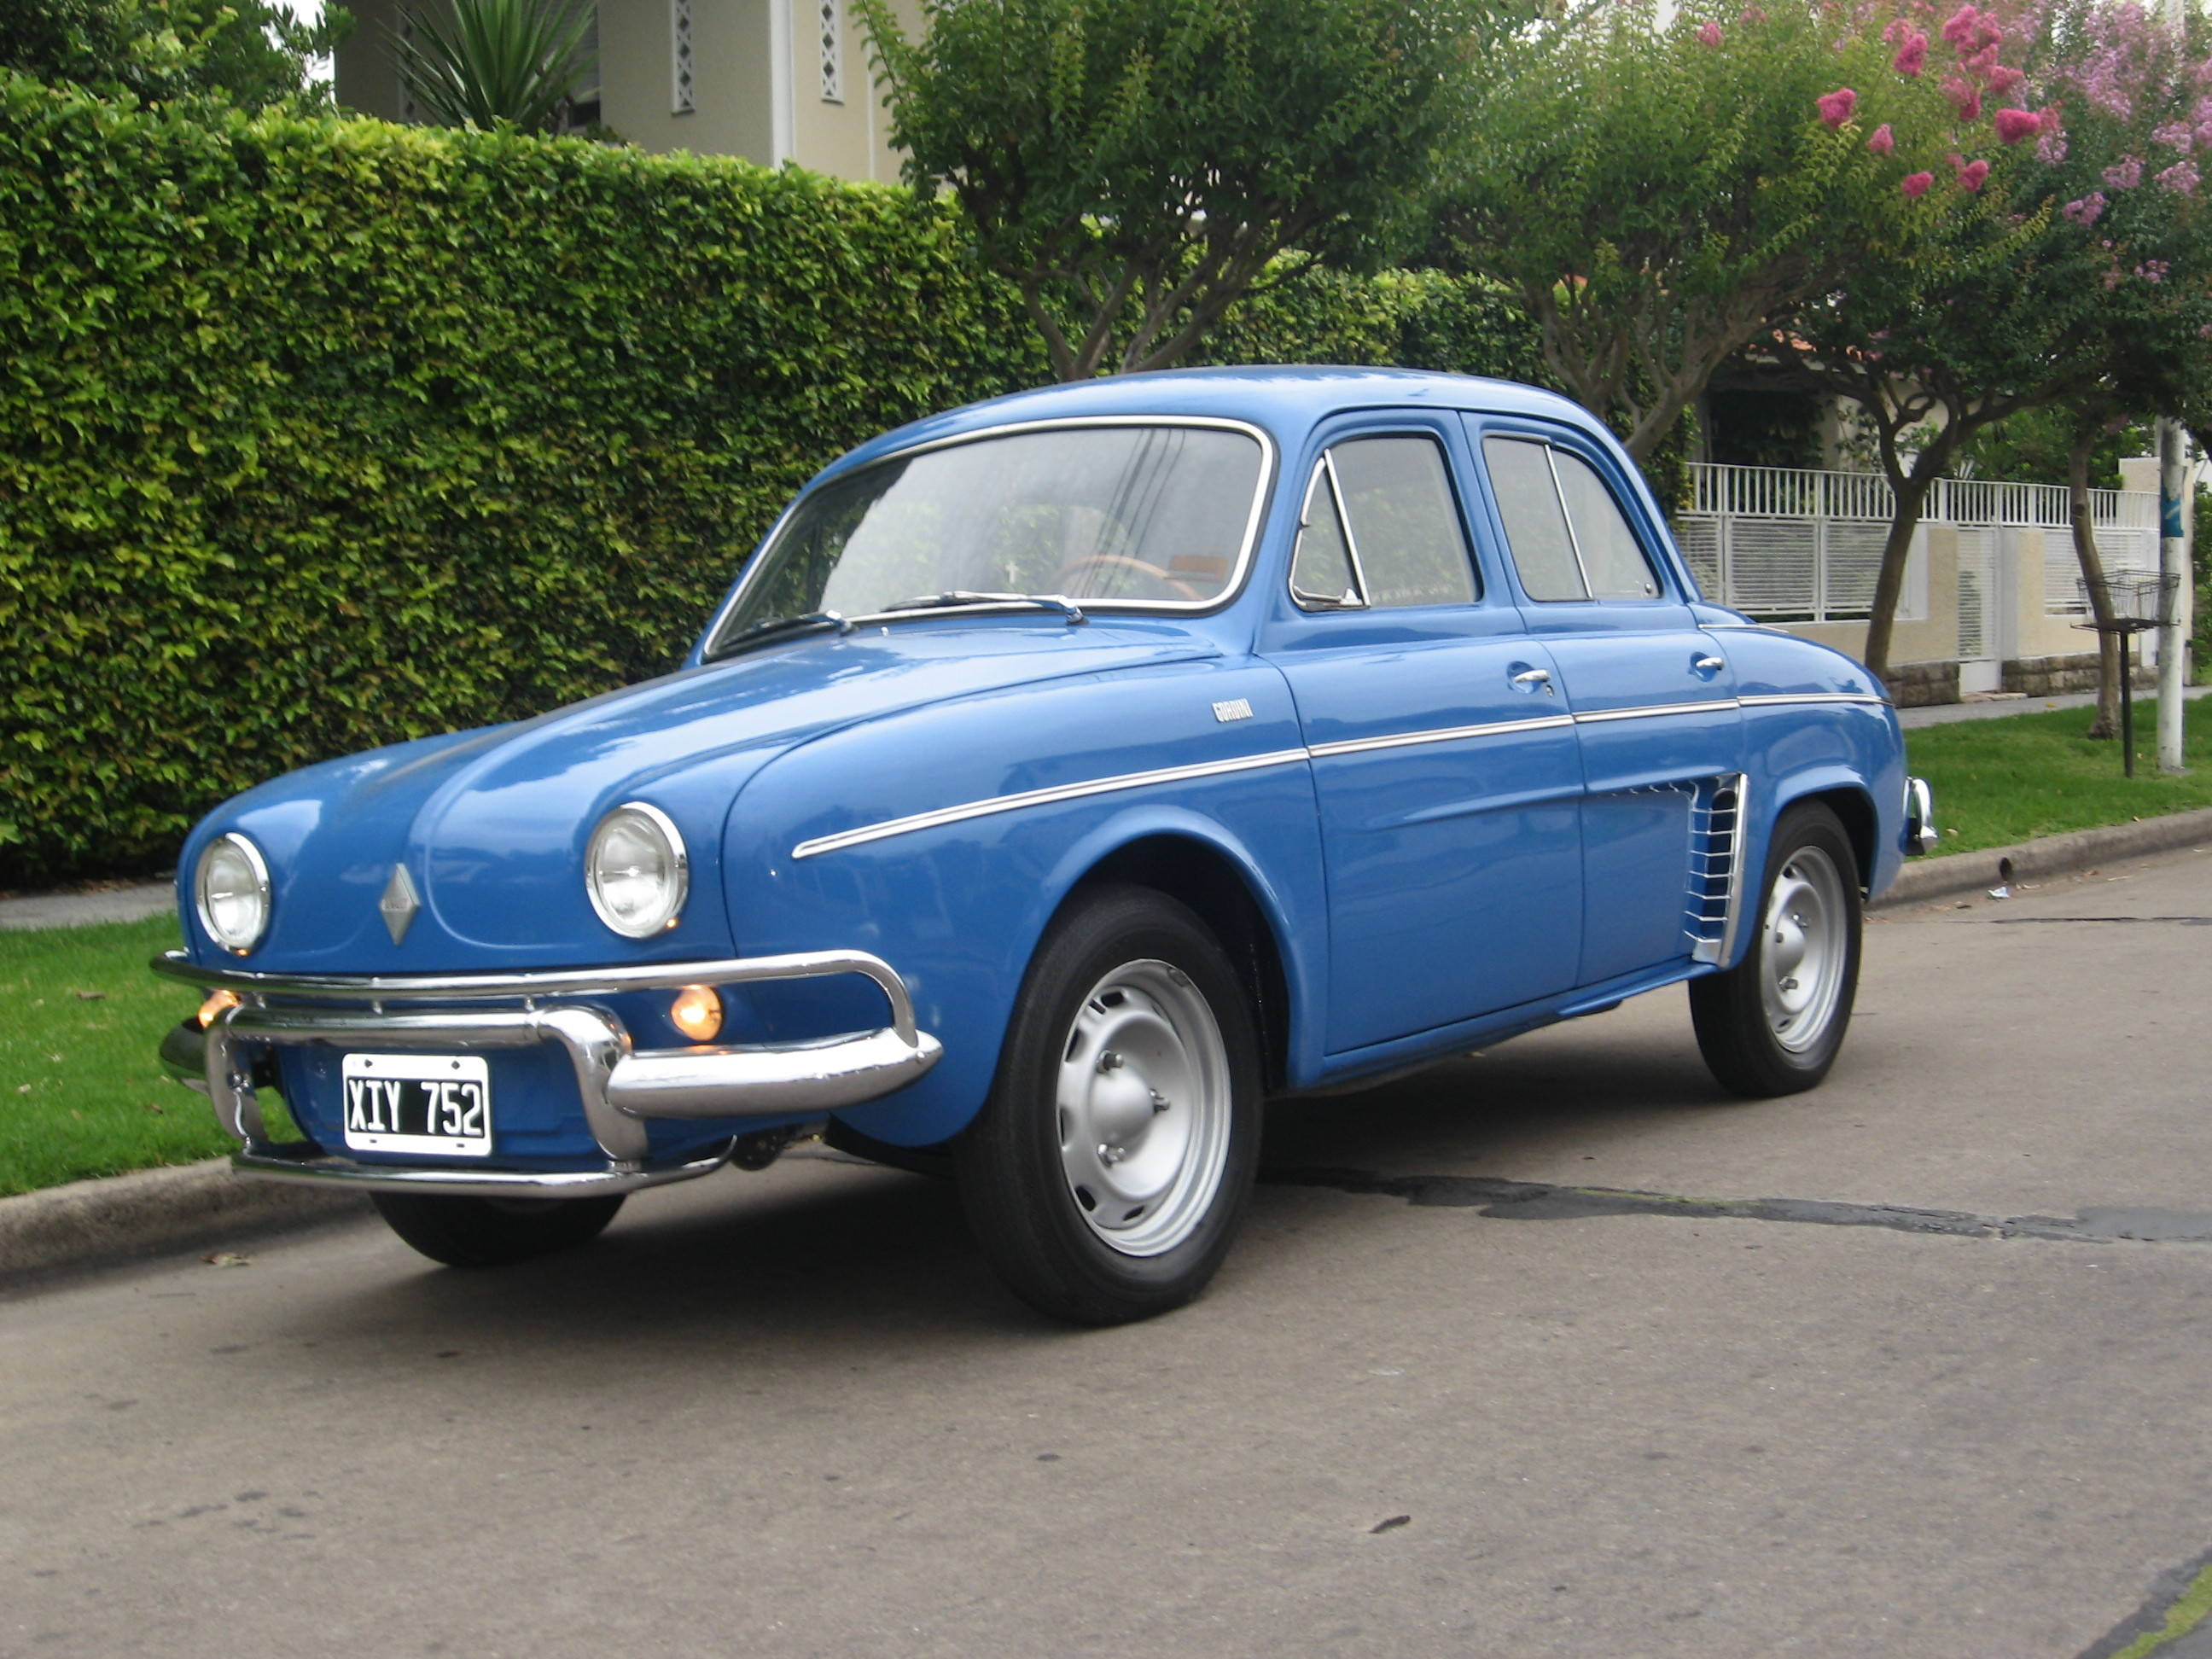 renault dauphine with Renault Ondine Gordini on Watch additionally The Fiat 500 Is Now Officially Work Of as well Renault Gordini 1093 Y Renault R8 in addition 7789482114 in addition Renault Dauphine.